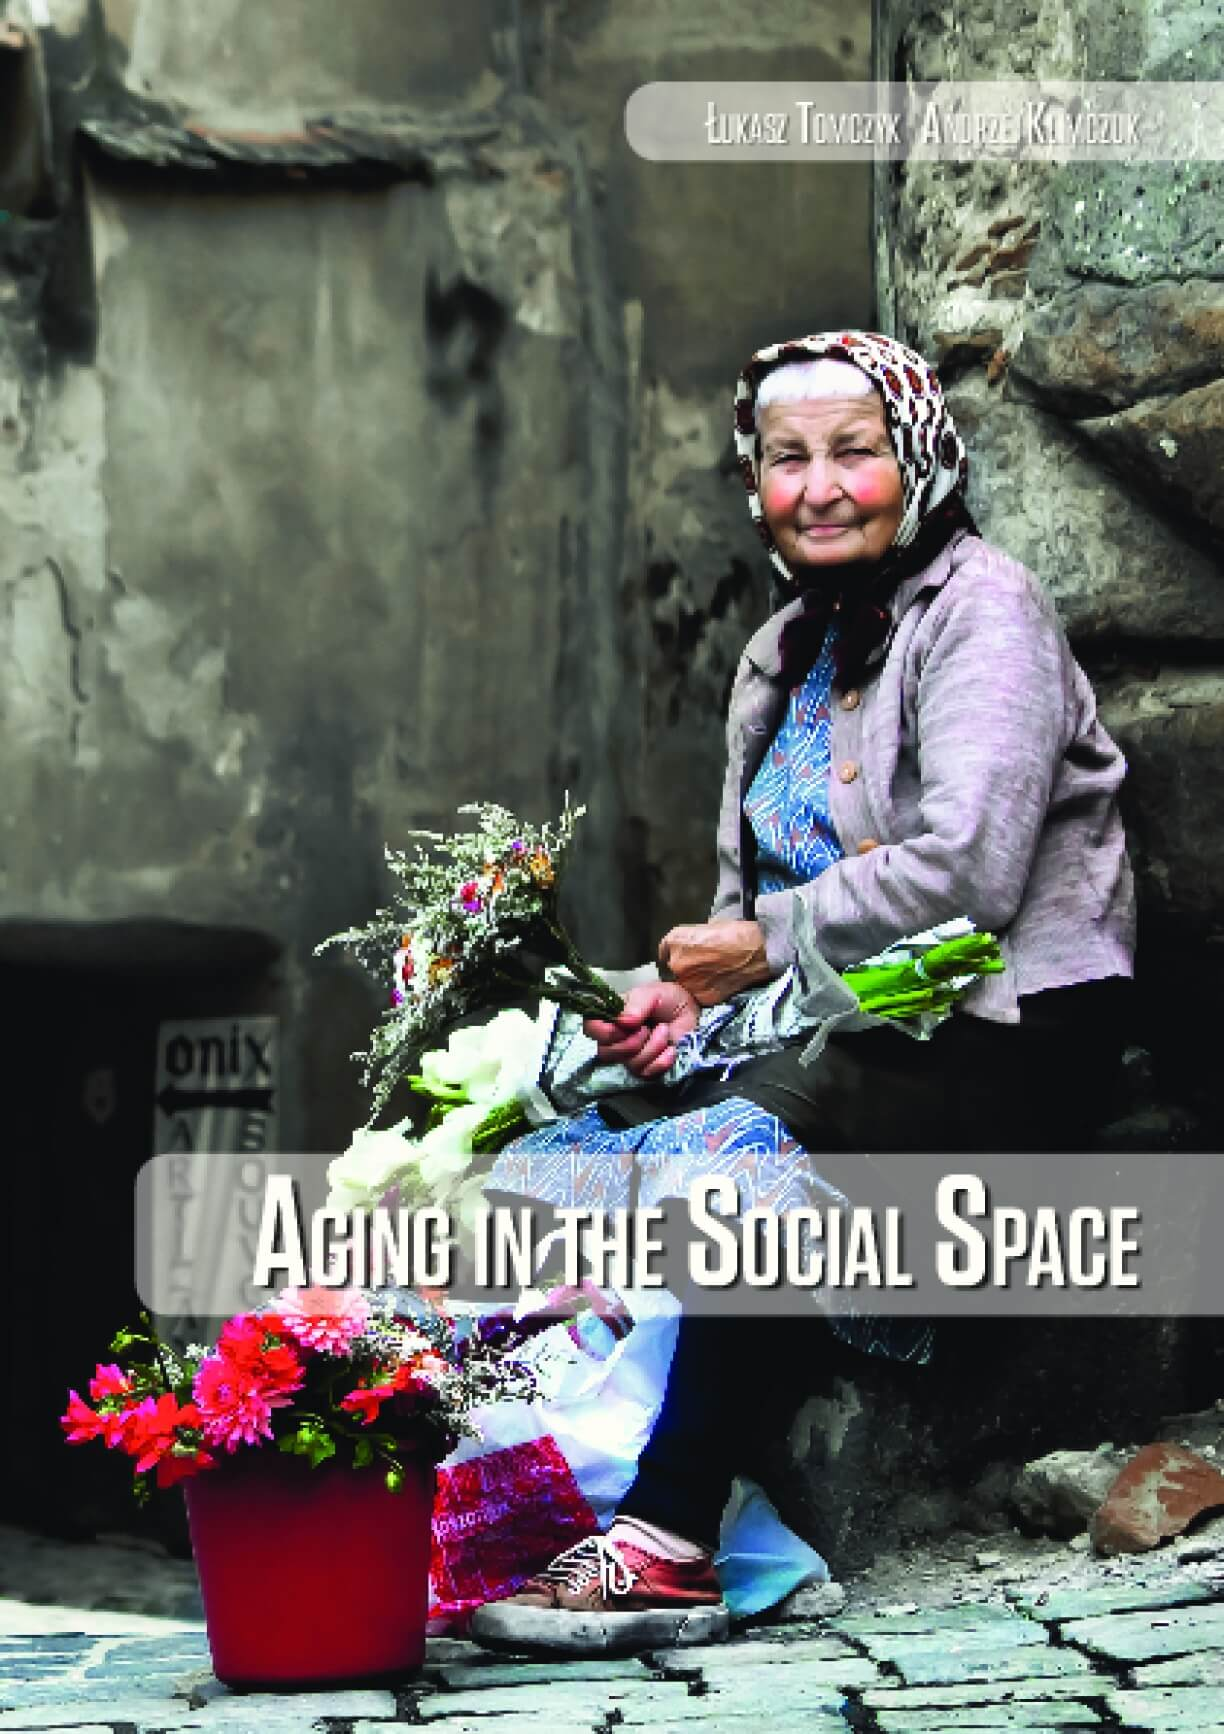 Aging in the Social Space